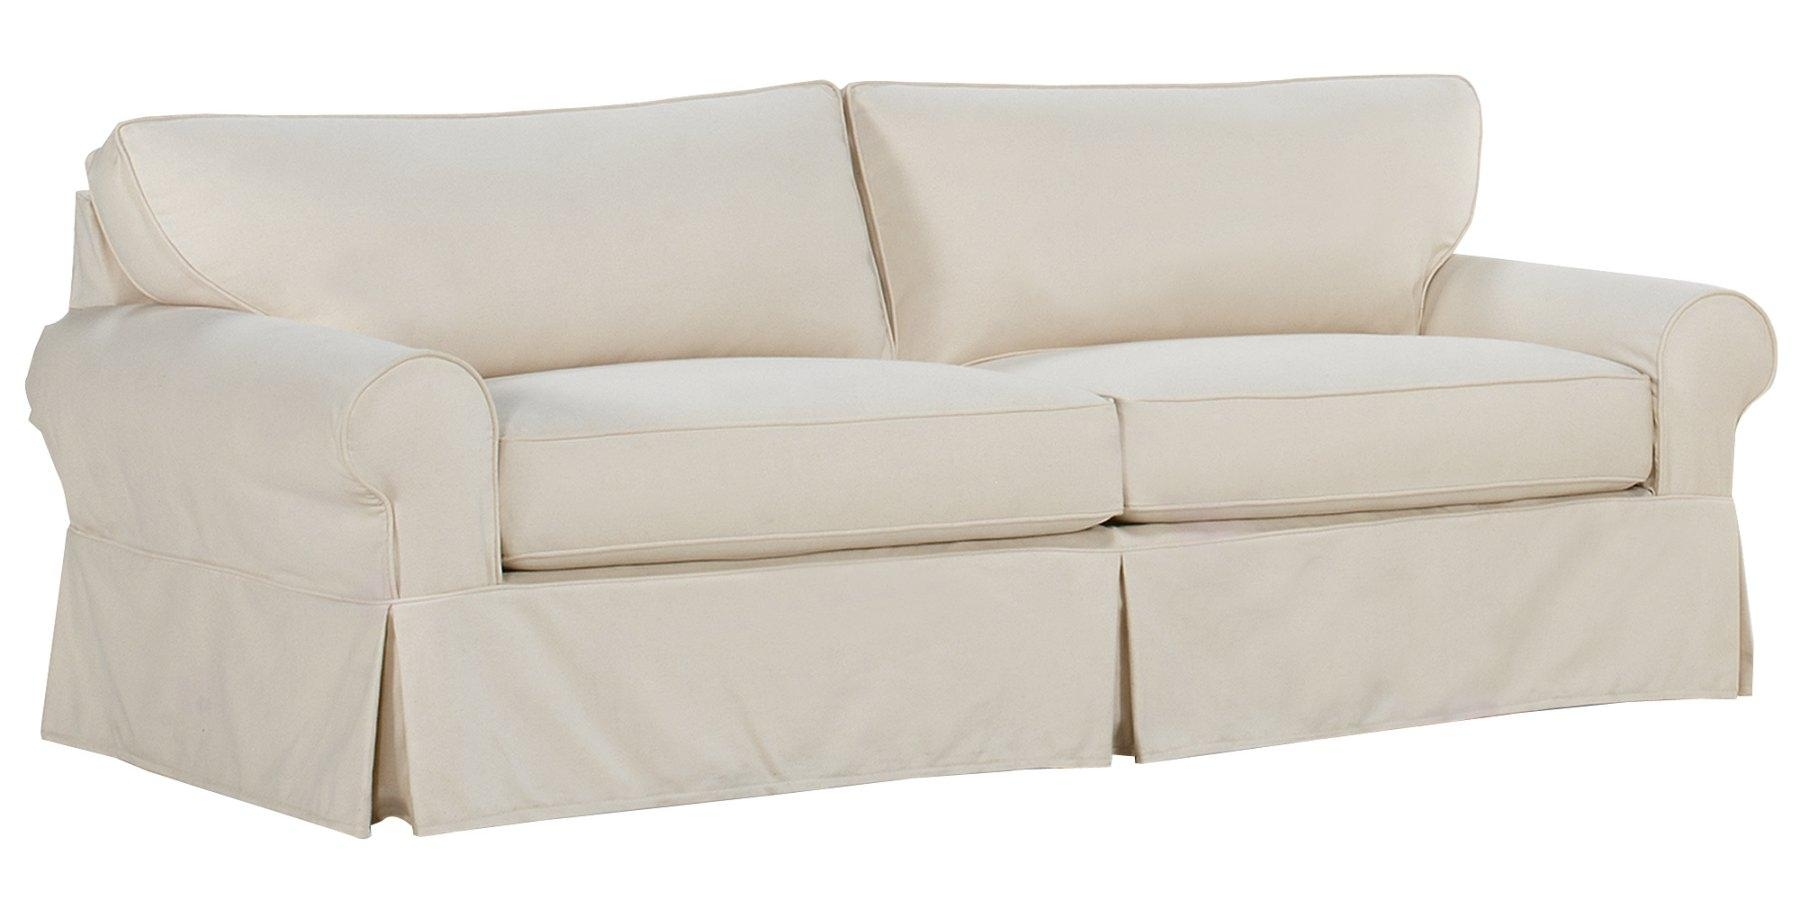 Sofas: Oversized Sofas | Sectional Couch For Sale | Oversized Sofa Regarding Large Sofa Chairs (View 18 of 20)